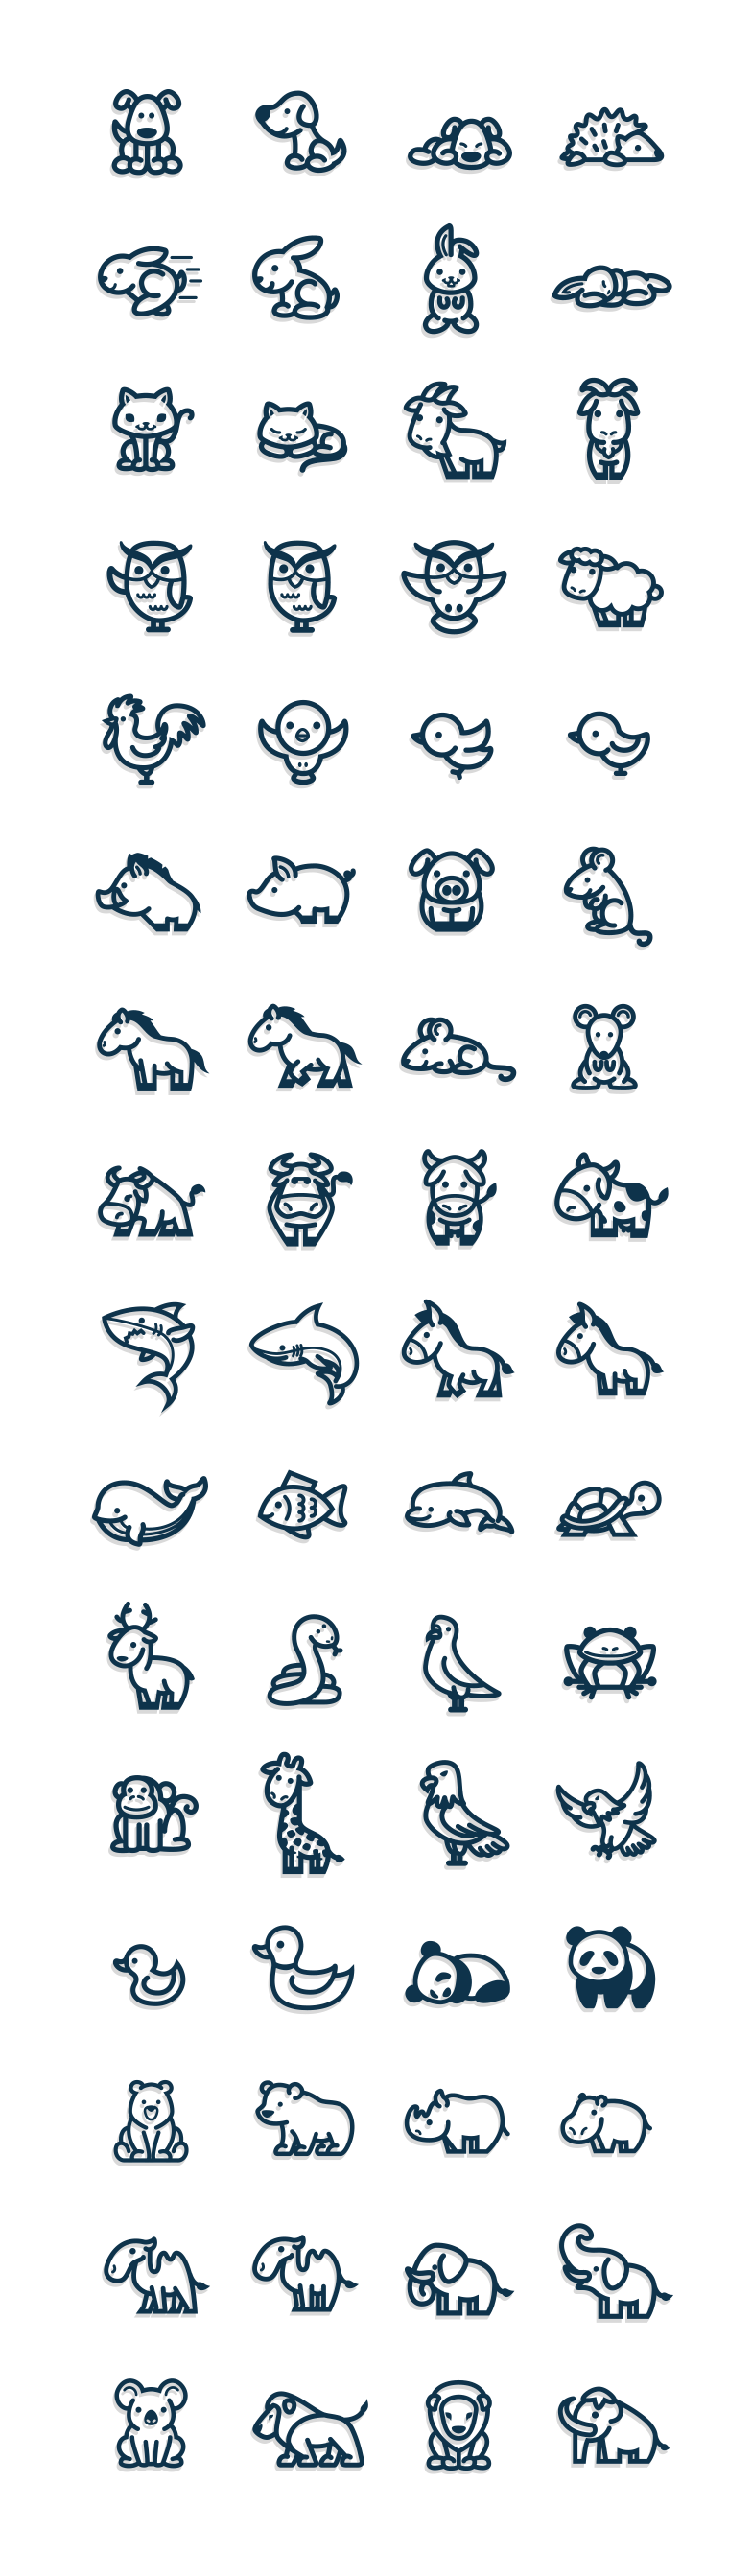 Animales tattoo i more. Planet clipart easy draw